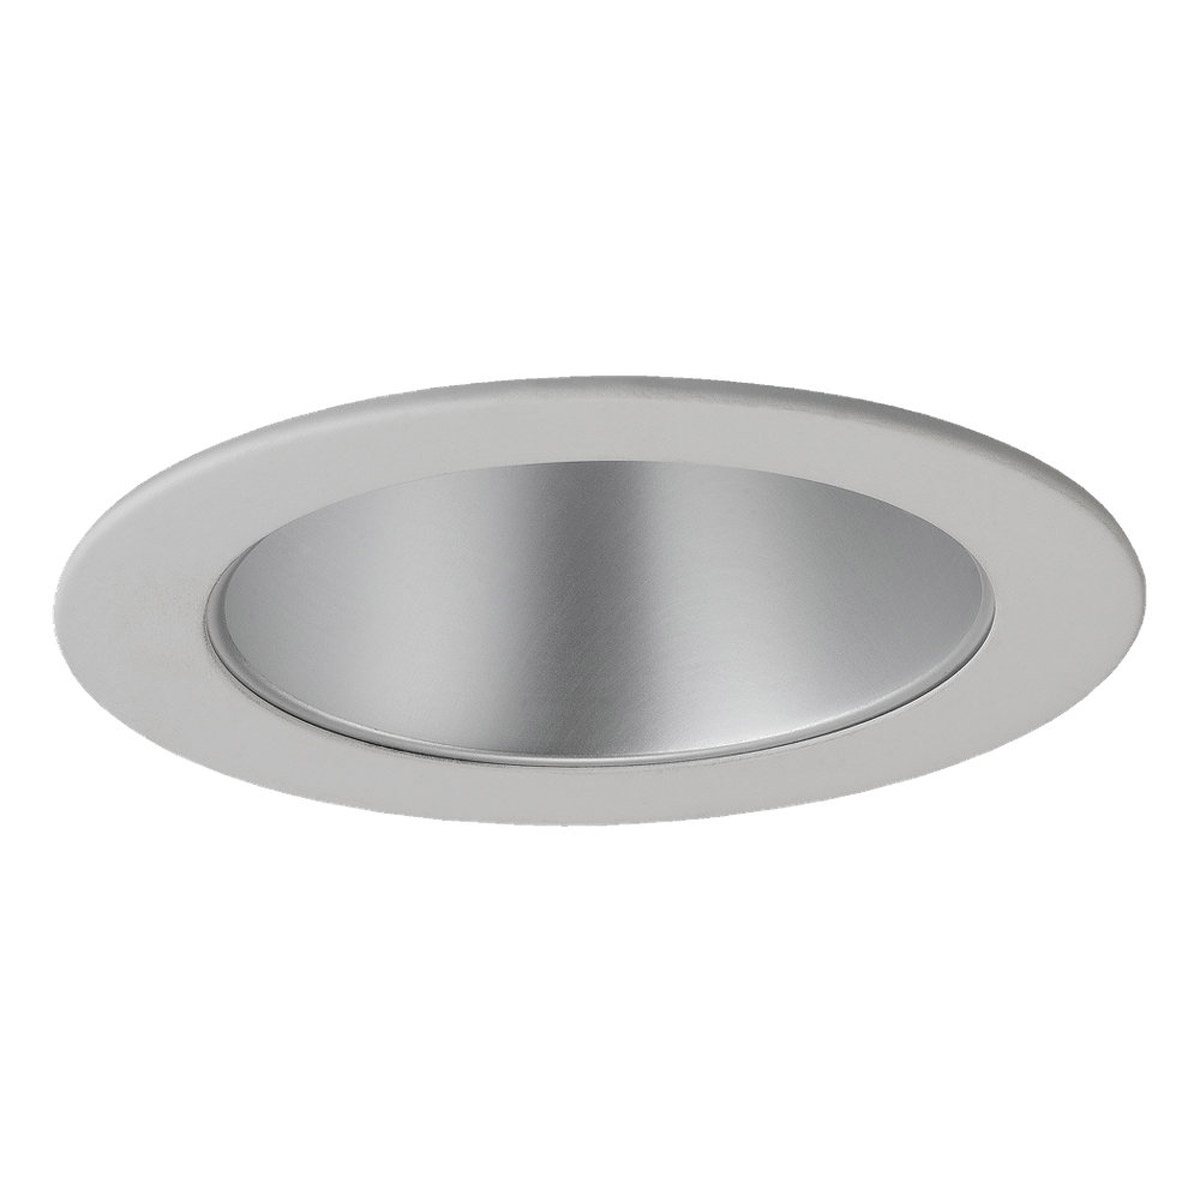 Sea Gull Lighting Signature Recessed Trim Only in Satin Nickel - White 1162AT-861 photo